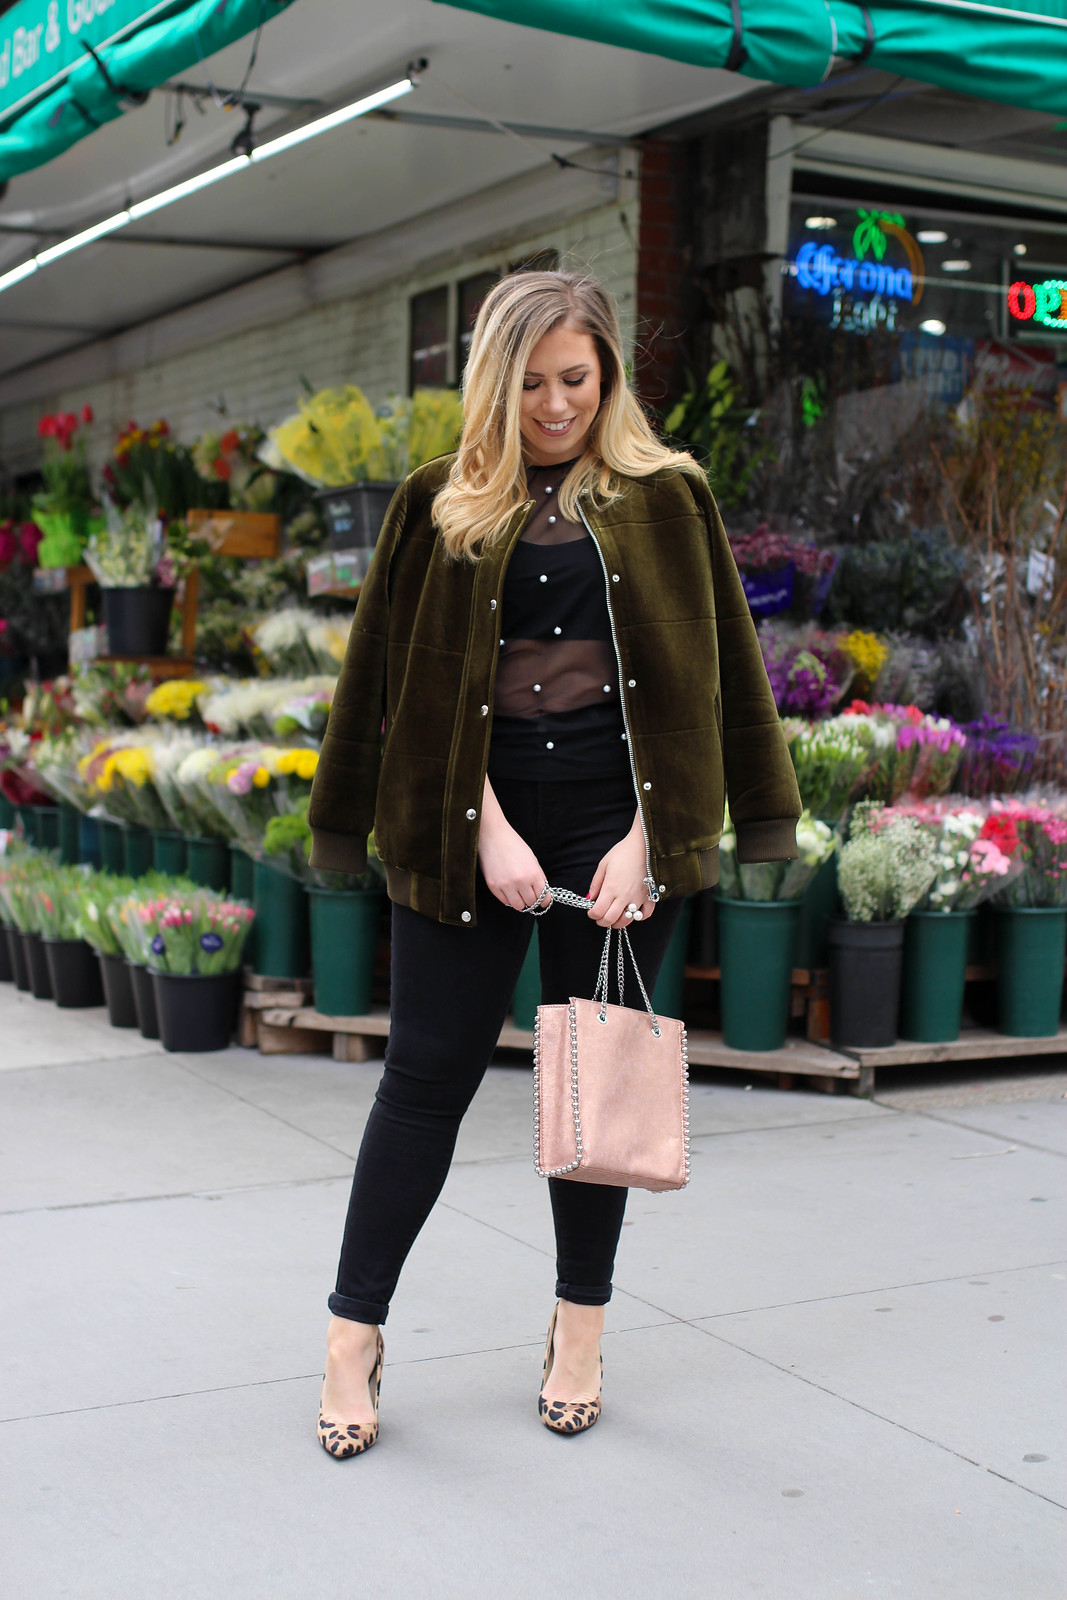 Spring Outfit Green Velvet Bomber Jacket Sheer Pearl Shirt Black Jeans Zara Rose Gold Bag Leopard Heels